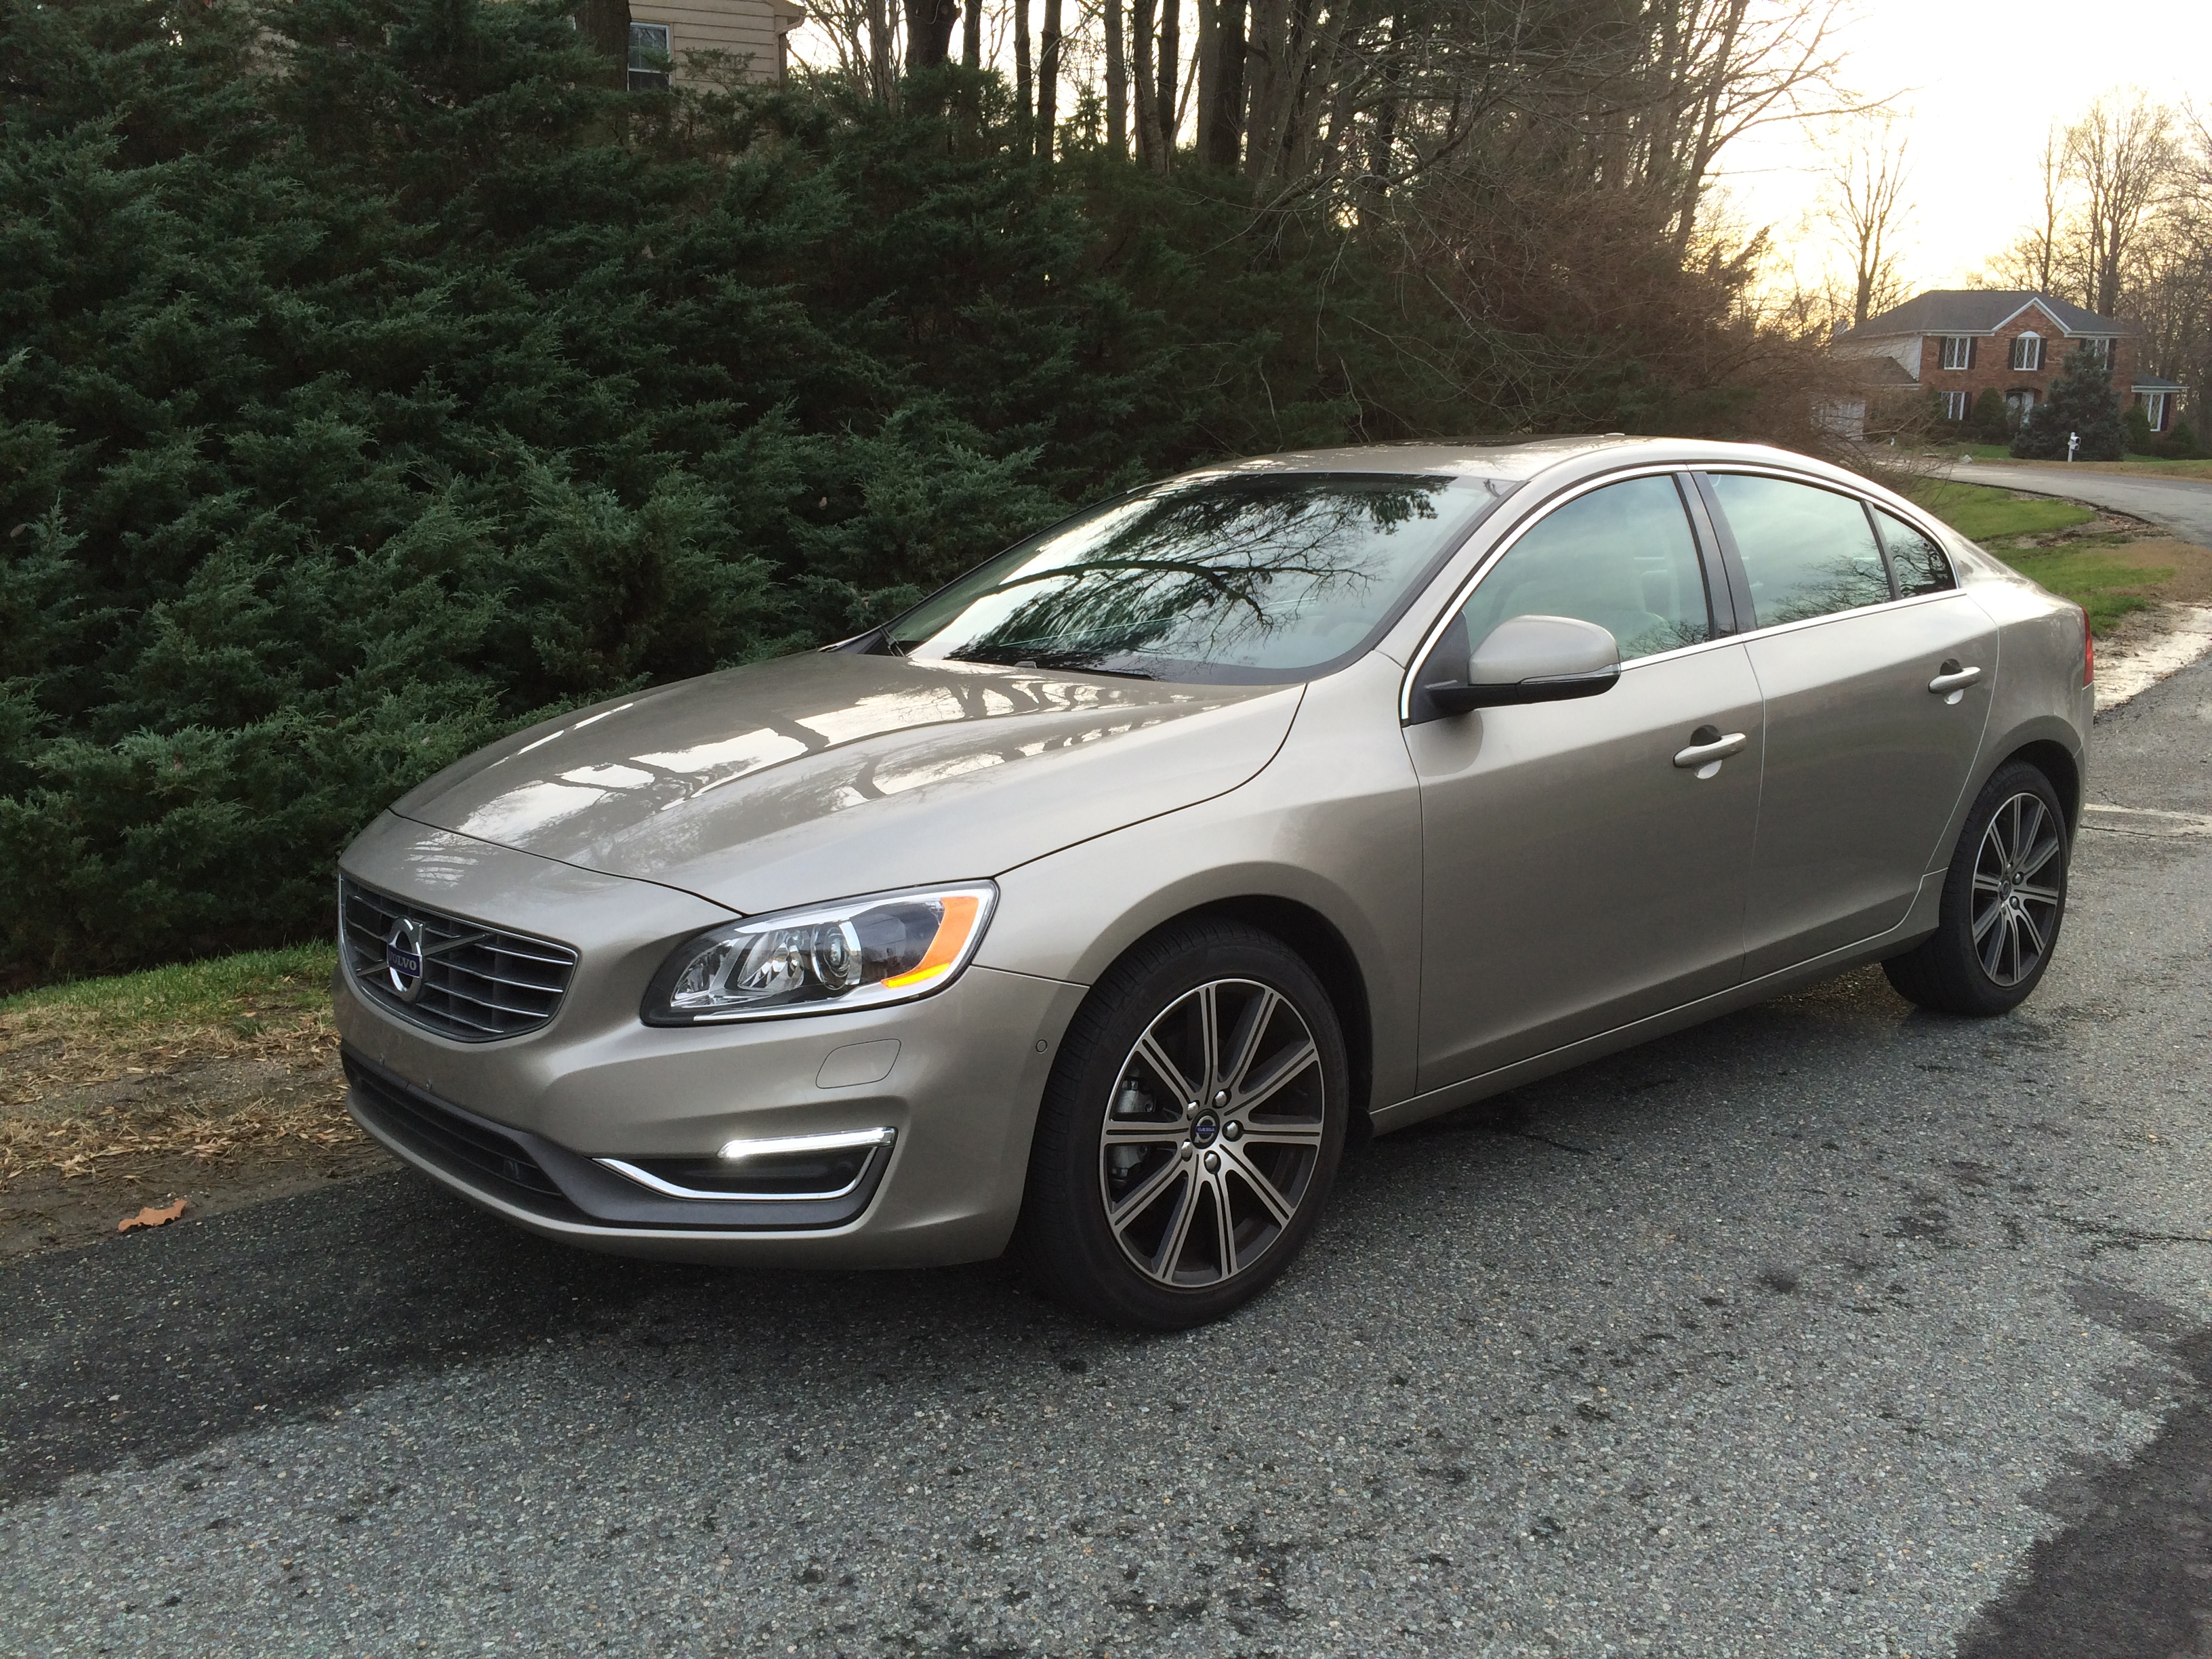 Volvo S60 T5 Inscription: The first car built in China to come to the U.S.